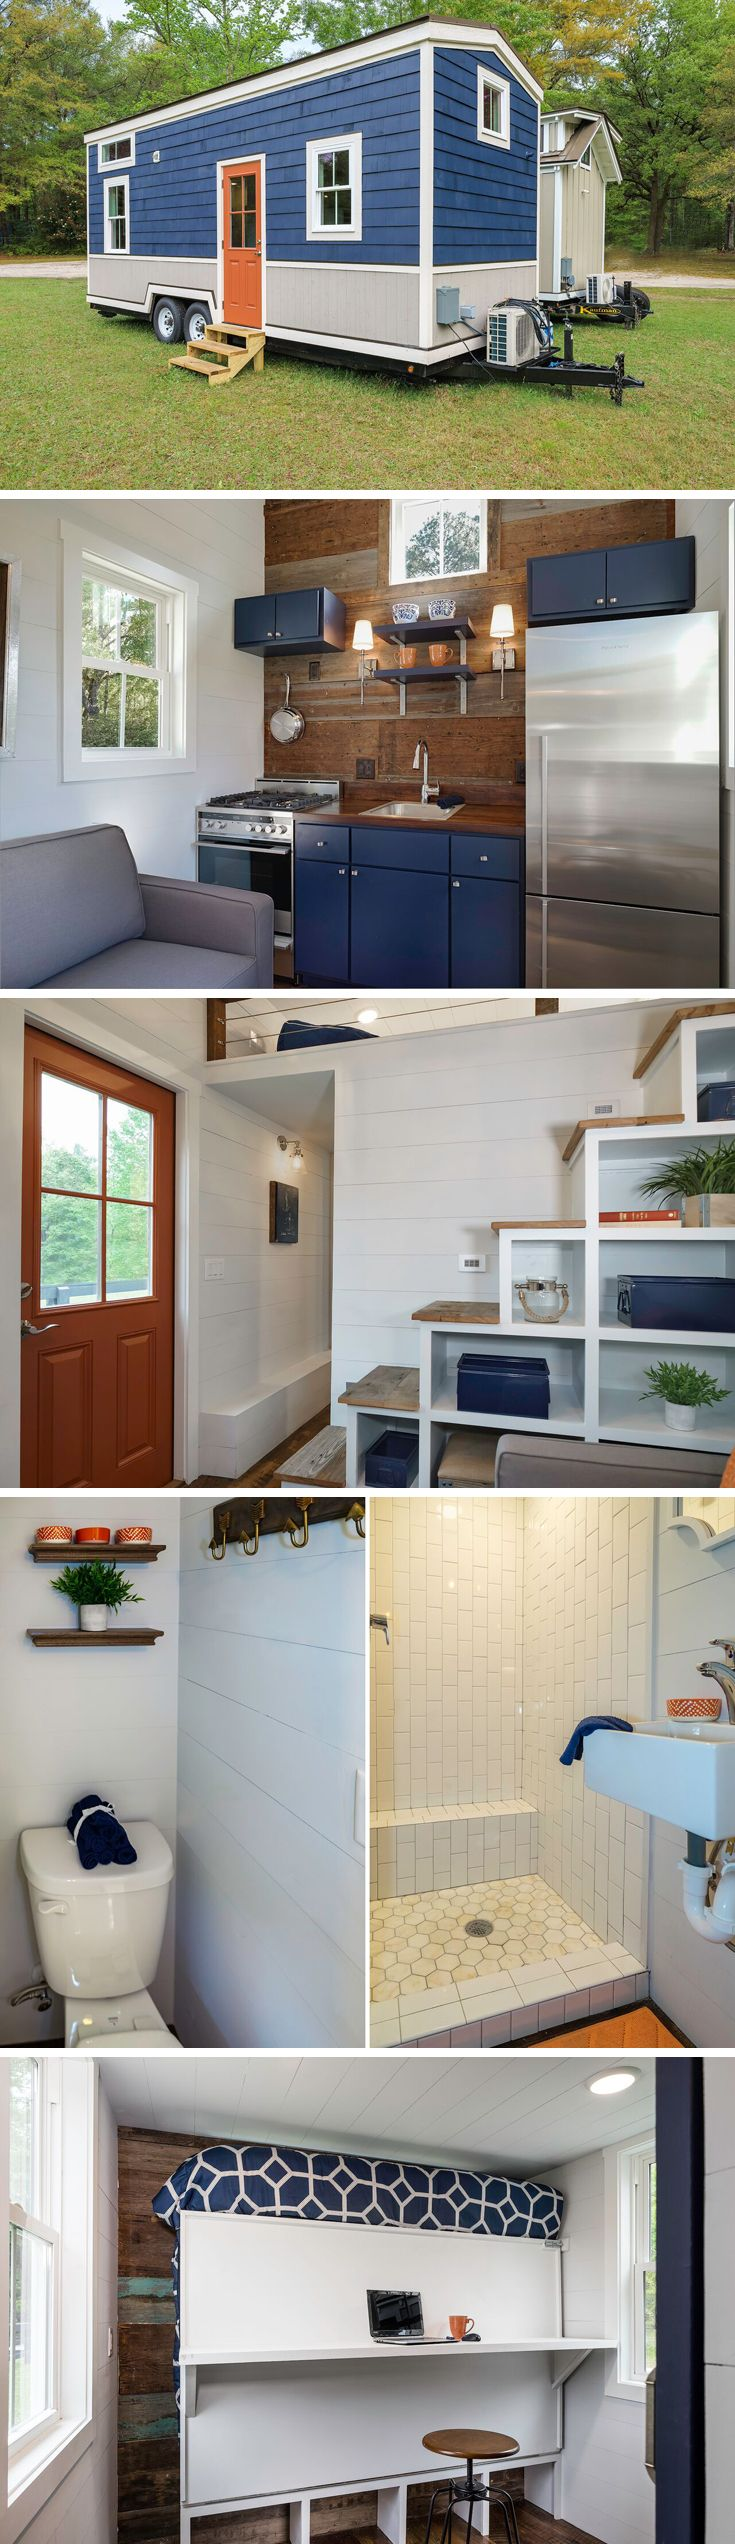 517 best tiny homes images on pinterest tiny living small